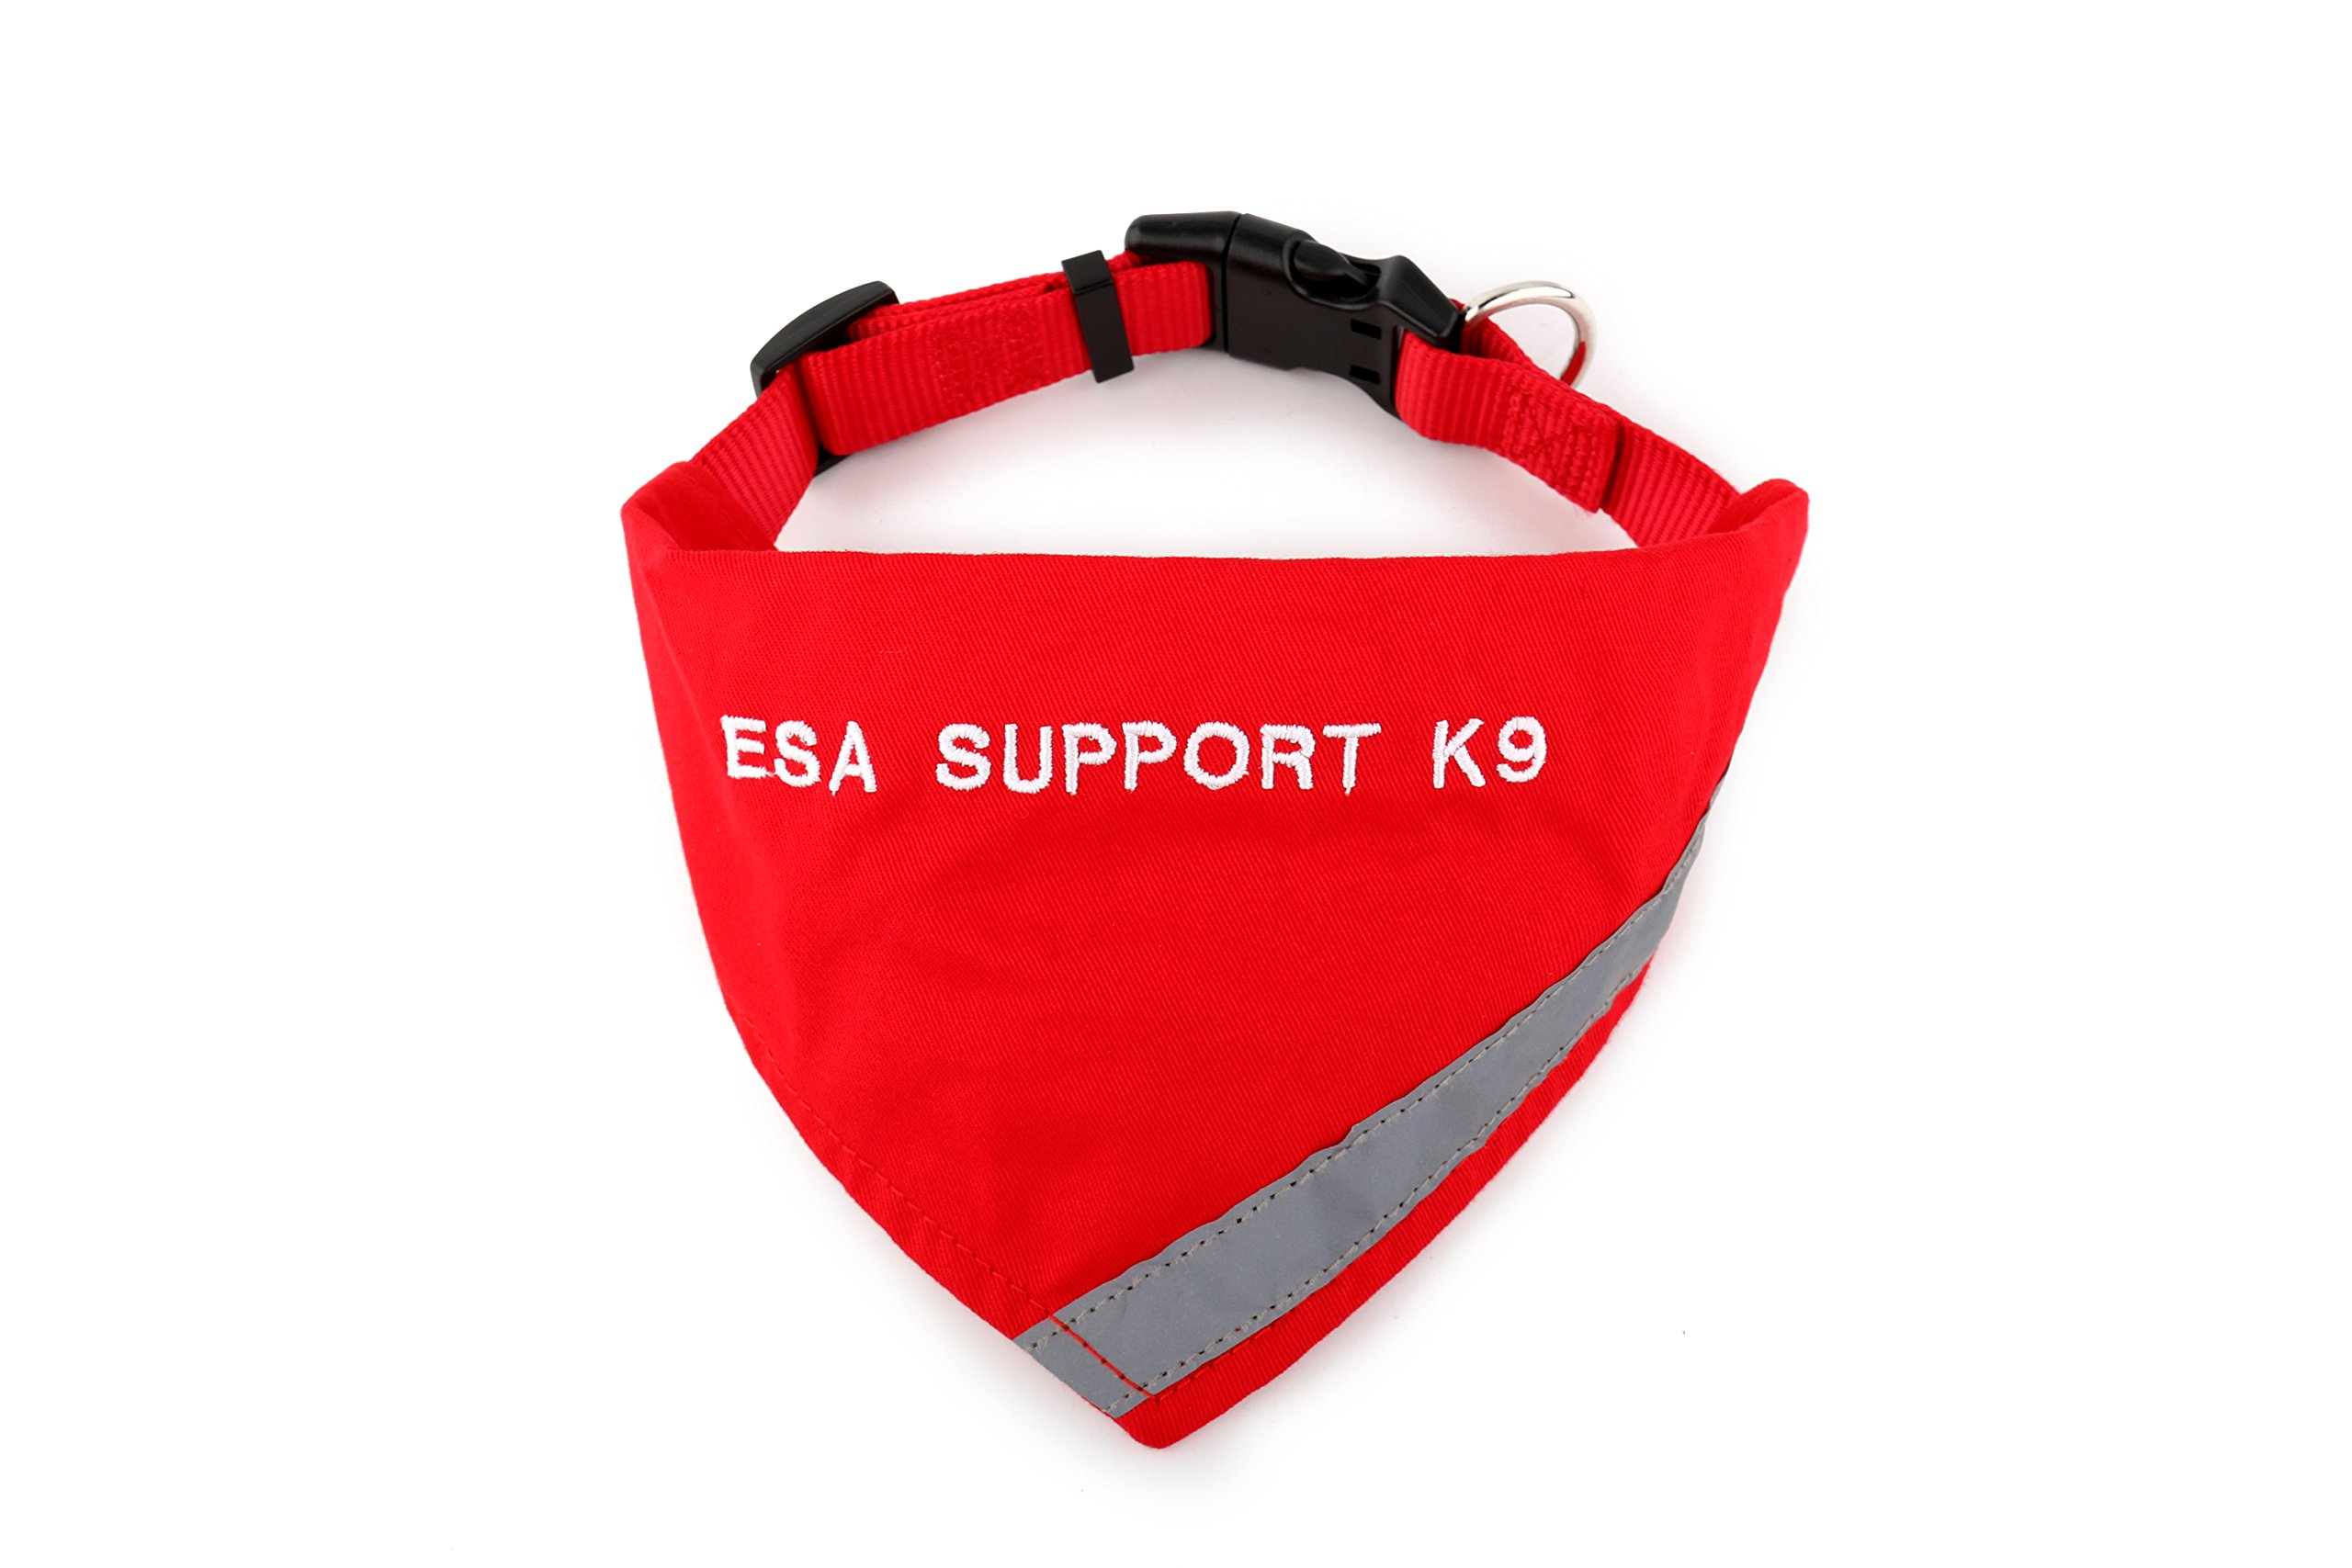 BANDANA embroidered with ''ESA SUPPORT K-9'' | Reflective Strip for pet safety | Built in matching collar to keep bandana secure | Metal ring to attach leash | Four Colors | All Sizes (X-Small to Large) by Register My Service Animal, LLC (Image #1)